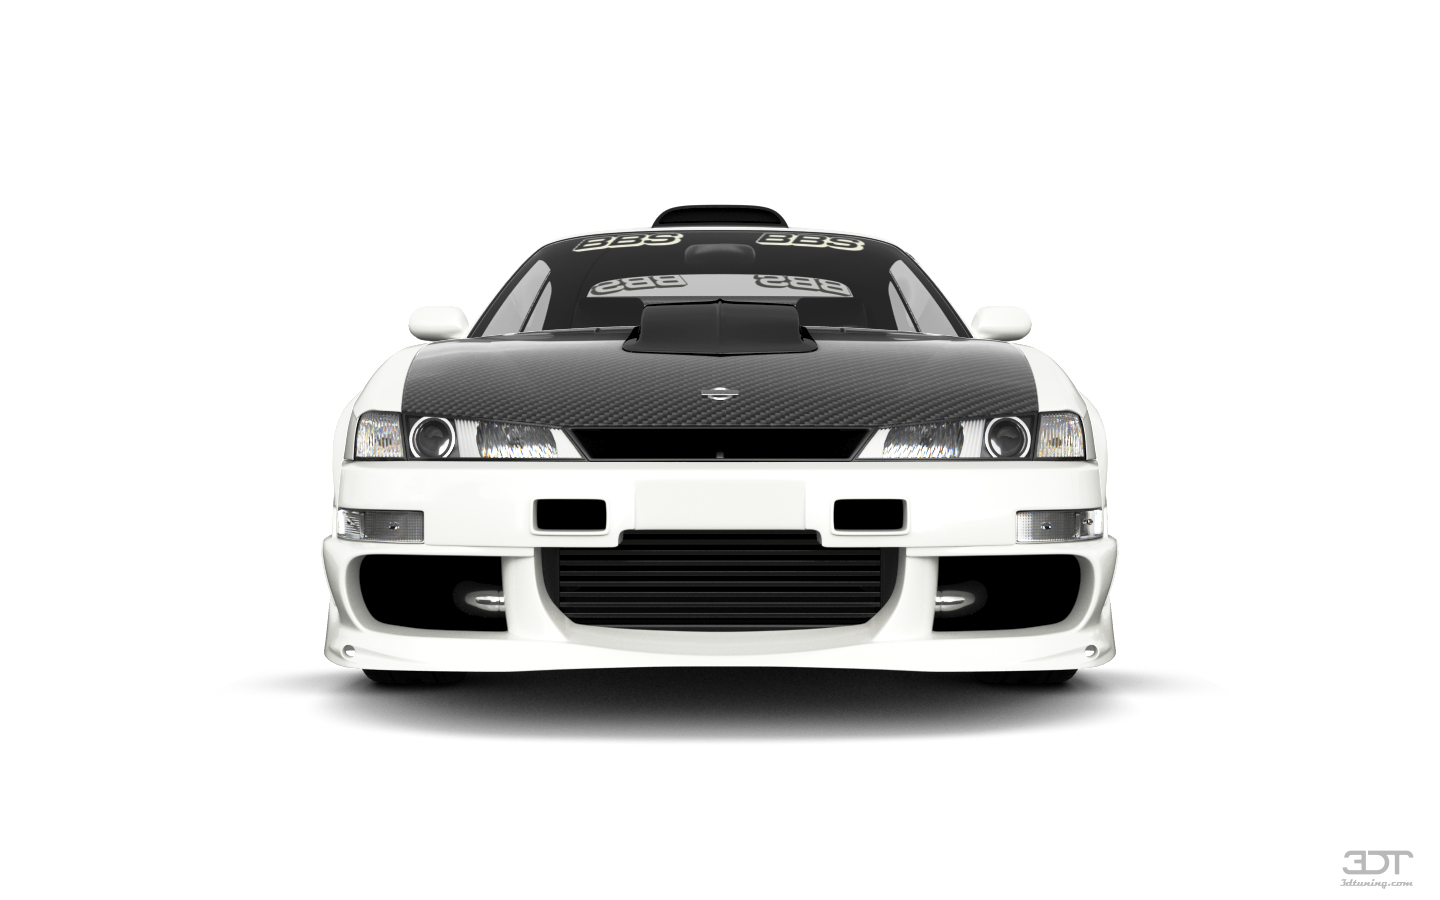 Nissan Silvia S14 2 Door Coupe 1995